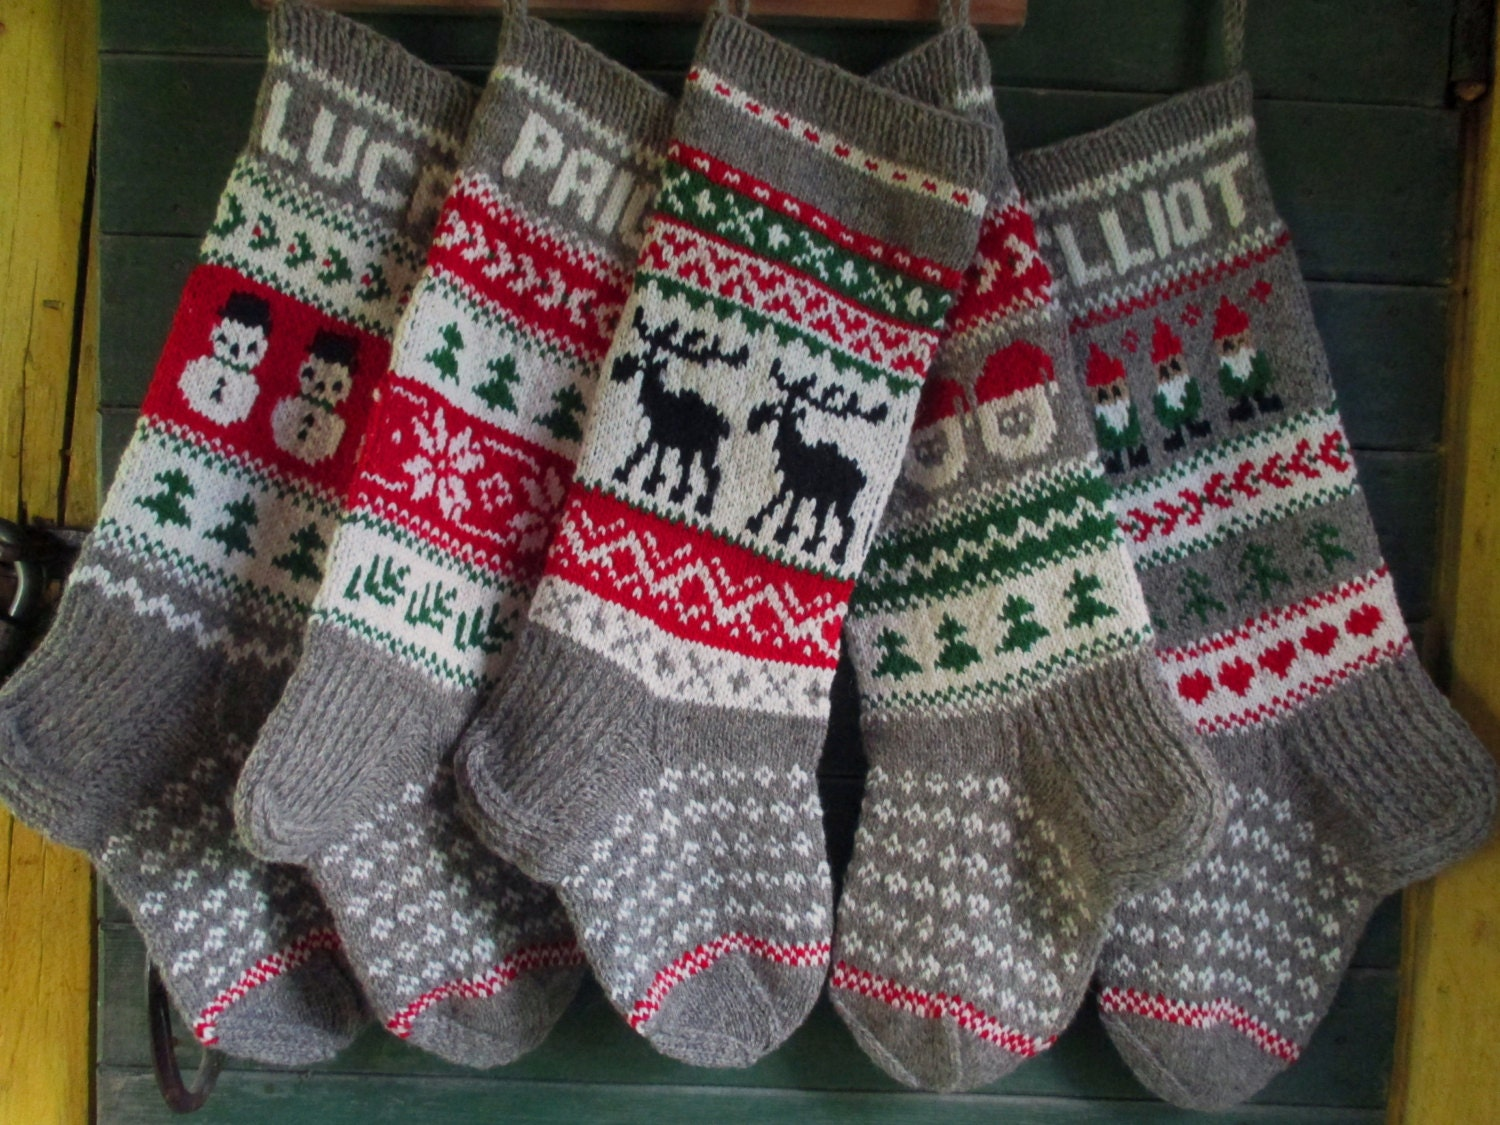 Knit Christmas Stockings 24 or 26 Personalized